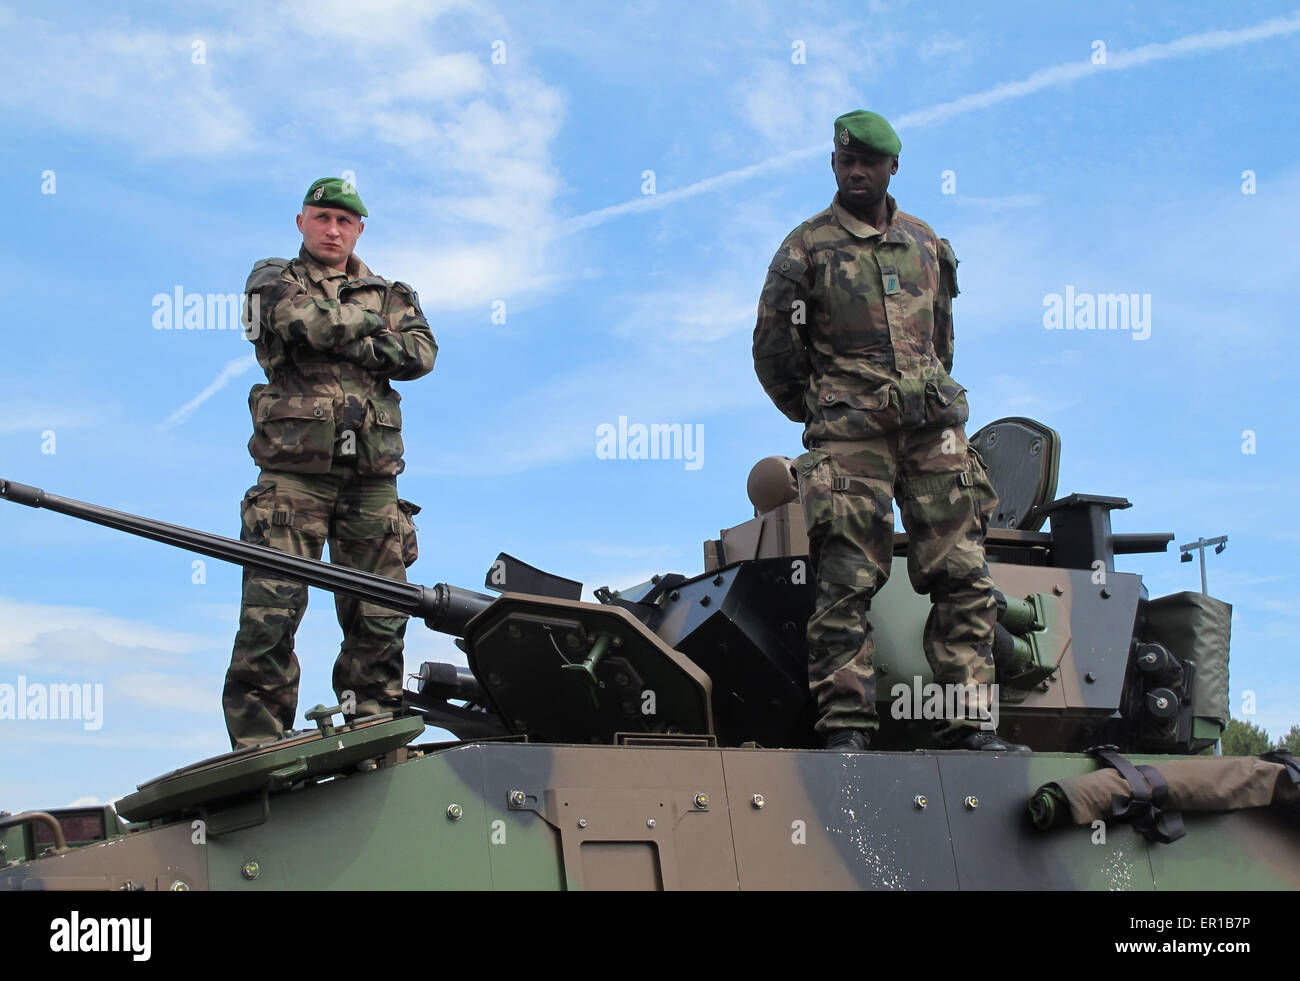 Aubagne france 29th apr 2015 soldiers of the french for 29 in french